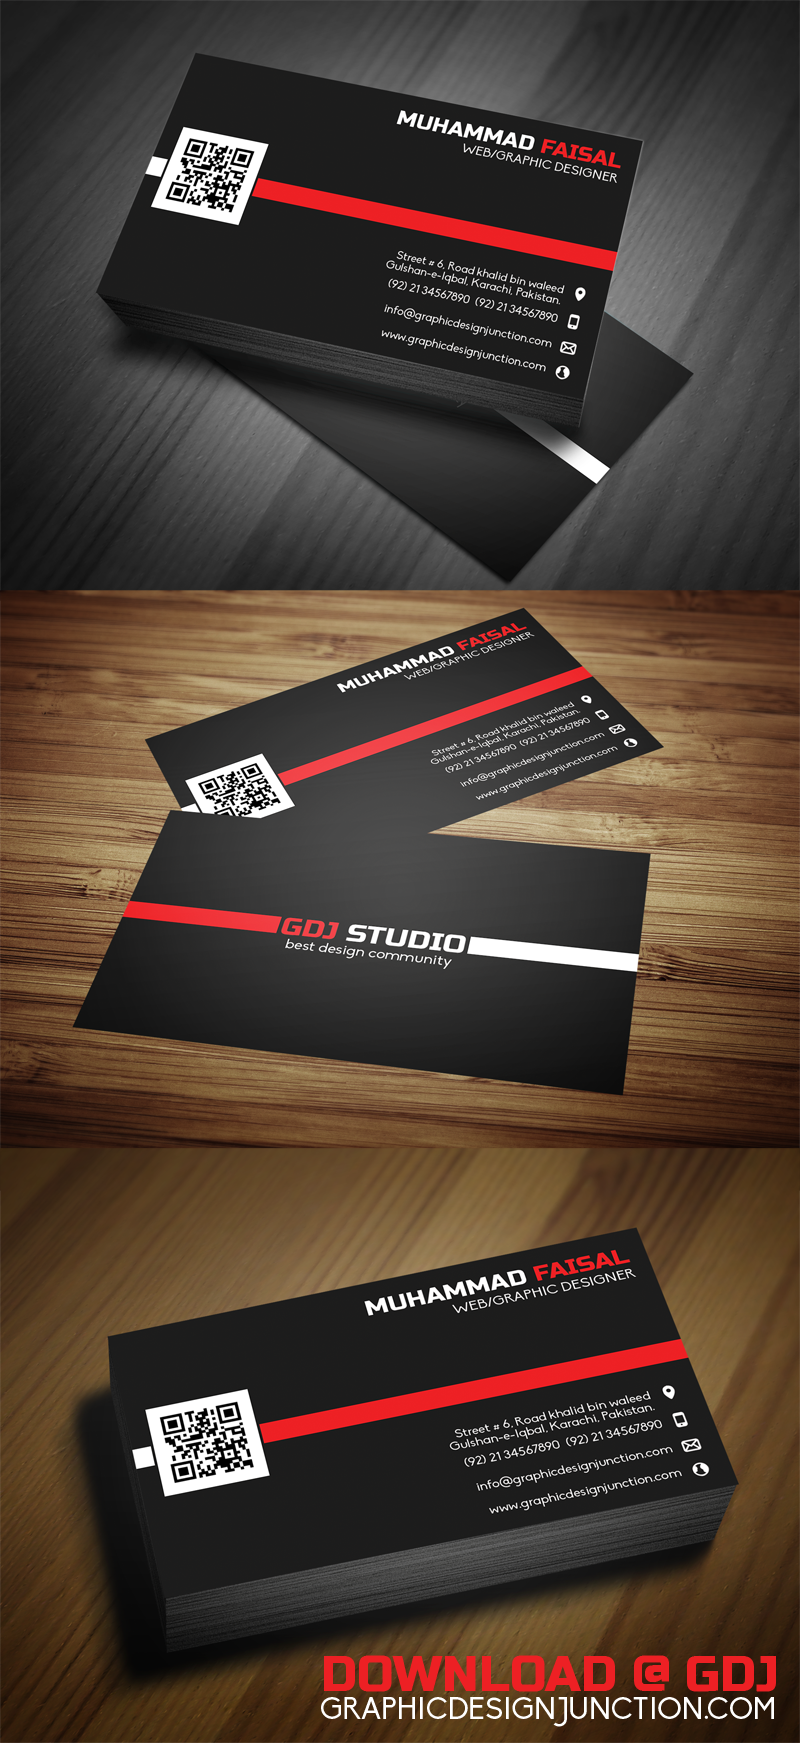 Business Card Mockup (PSD) | Freebies | Graphic Design Junction